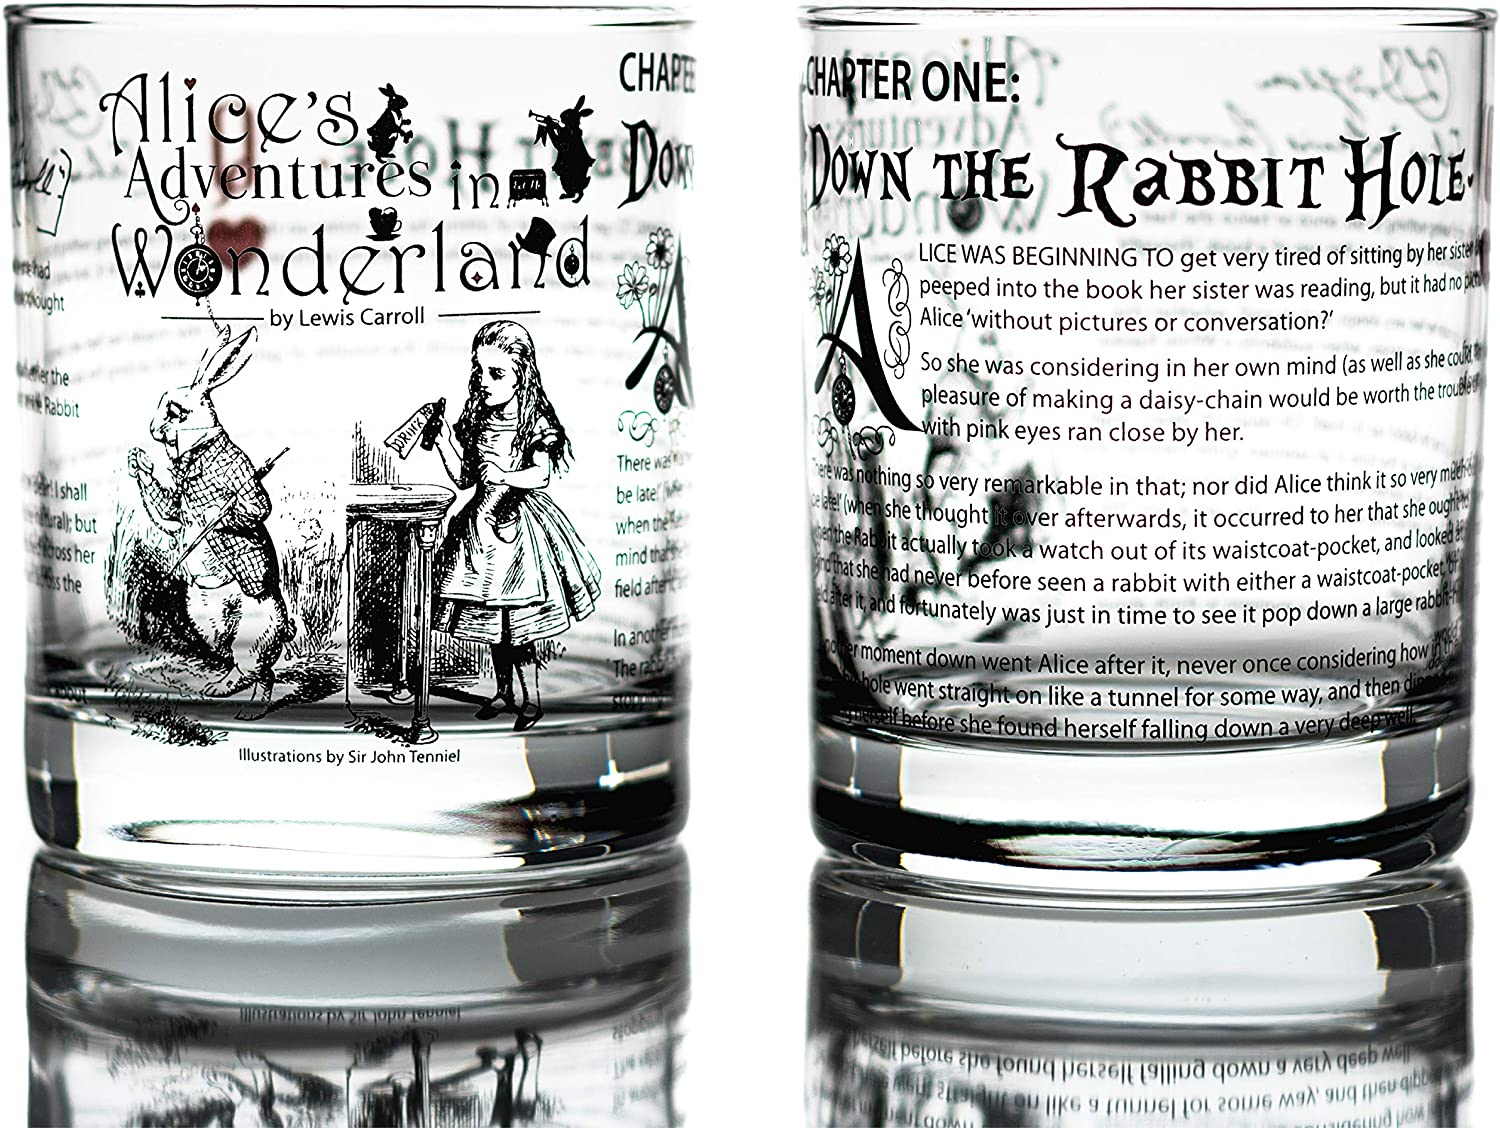 Greenline Goods Whiskey Glasses - Alice in Wonderland (Set of 2) | Literature Rocks Glass with Lewis Carroll Book Images & Writing